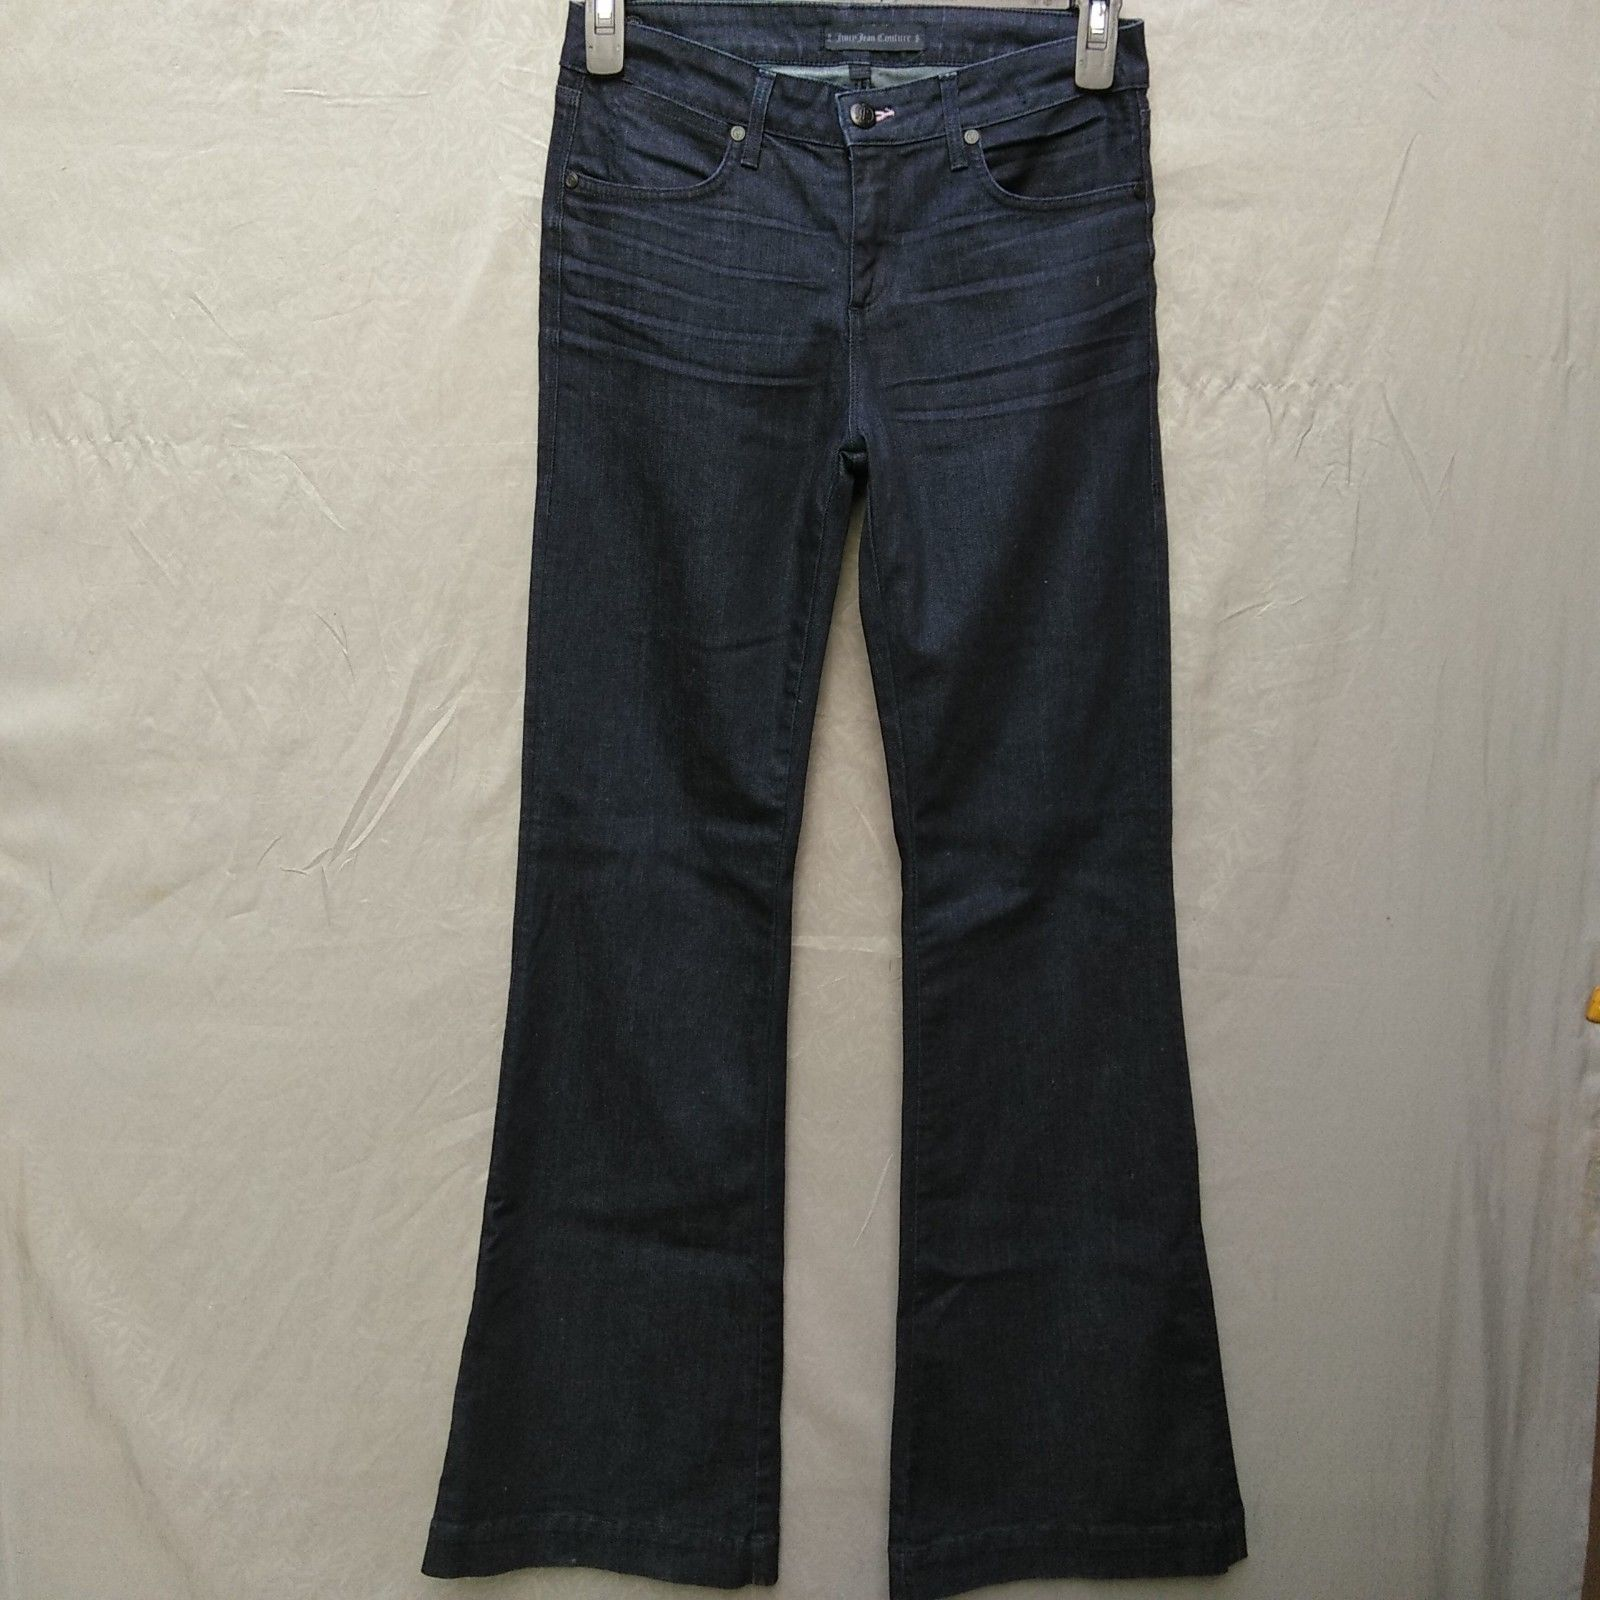 Juicy Jean Couture High Rise Flare Womens Jeans Size 28 Long Dark Wash